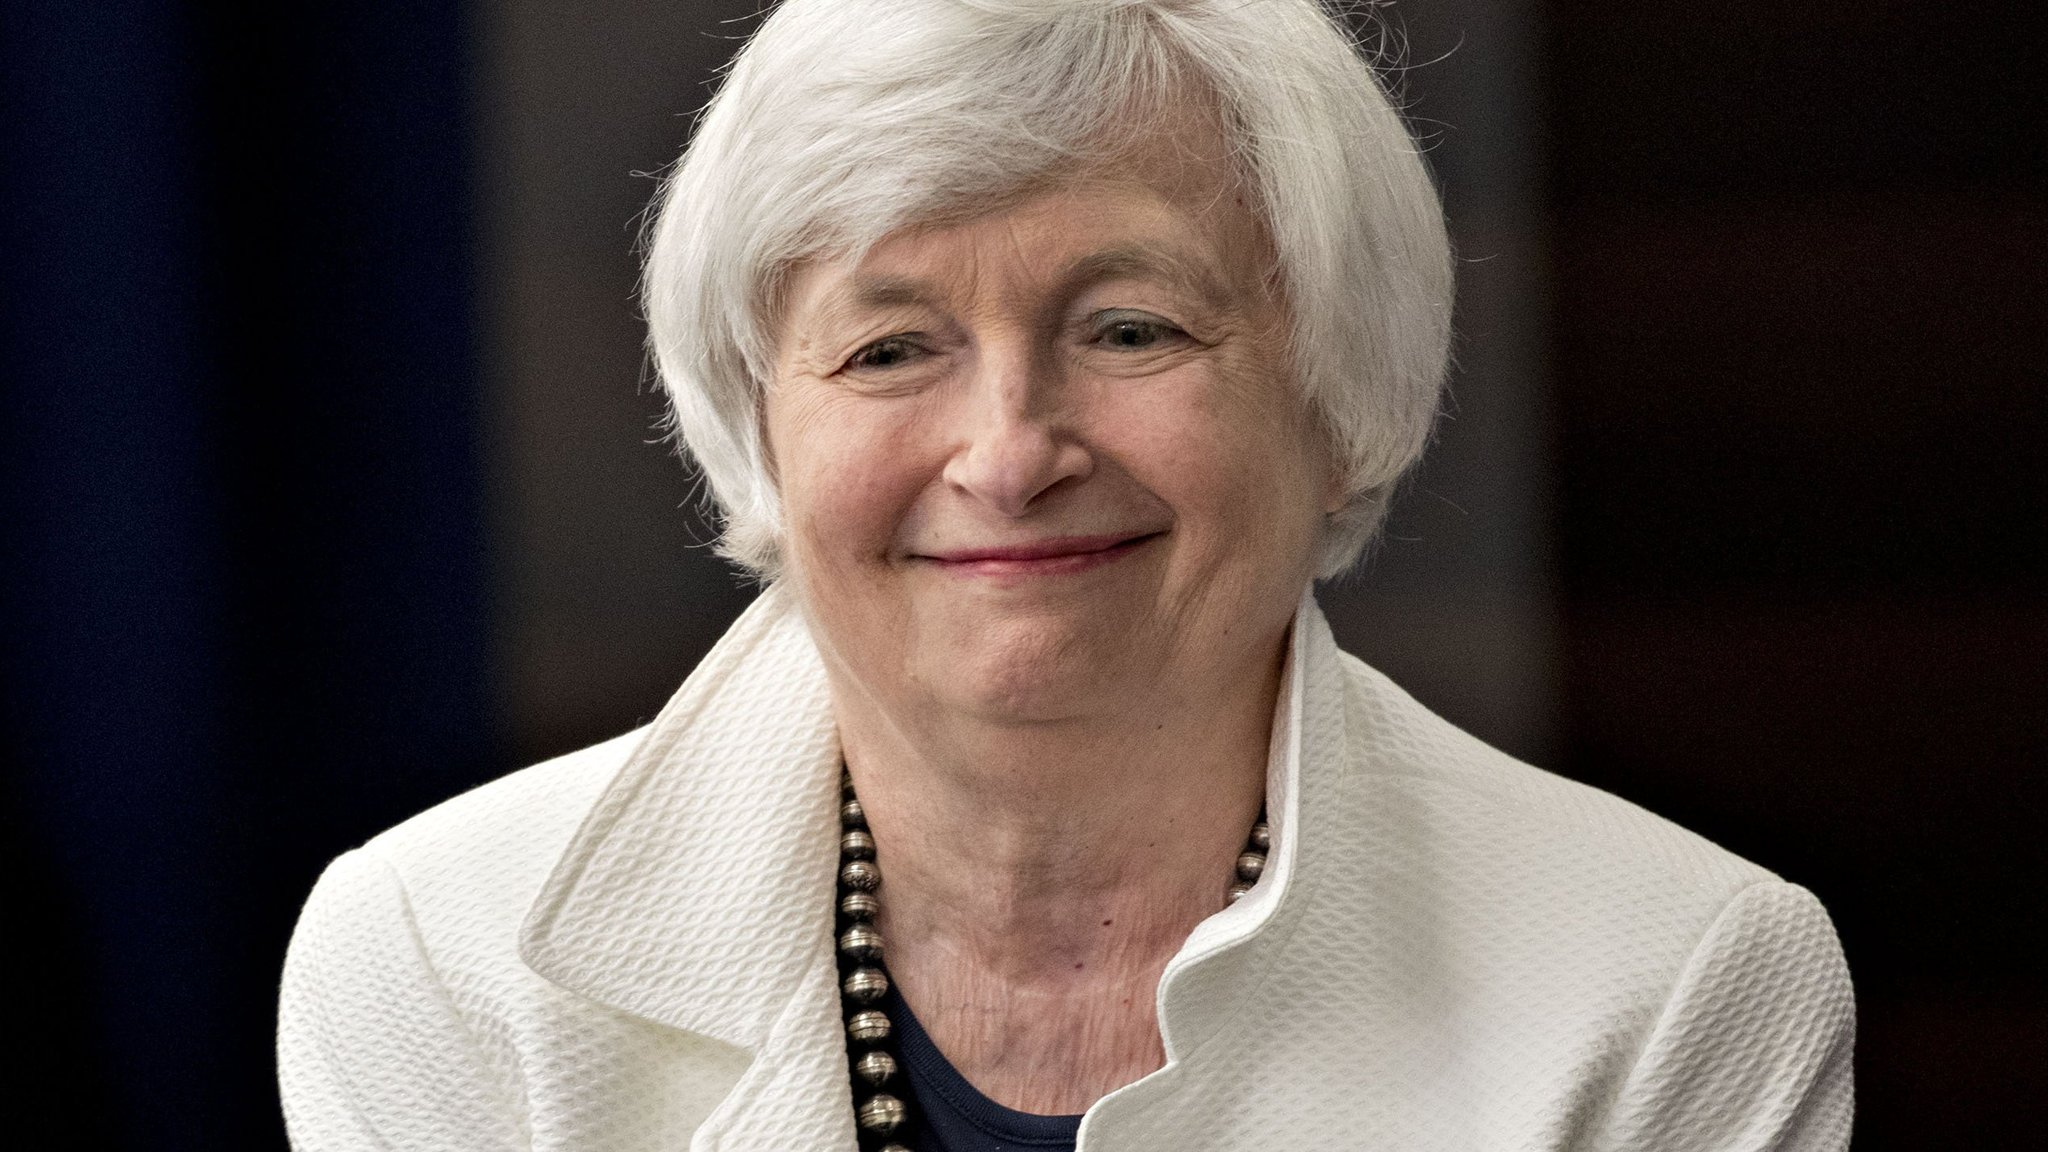 Yellen to quit Fed board after Powell sworn in